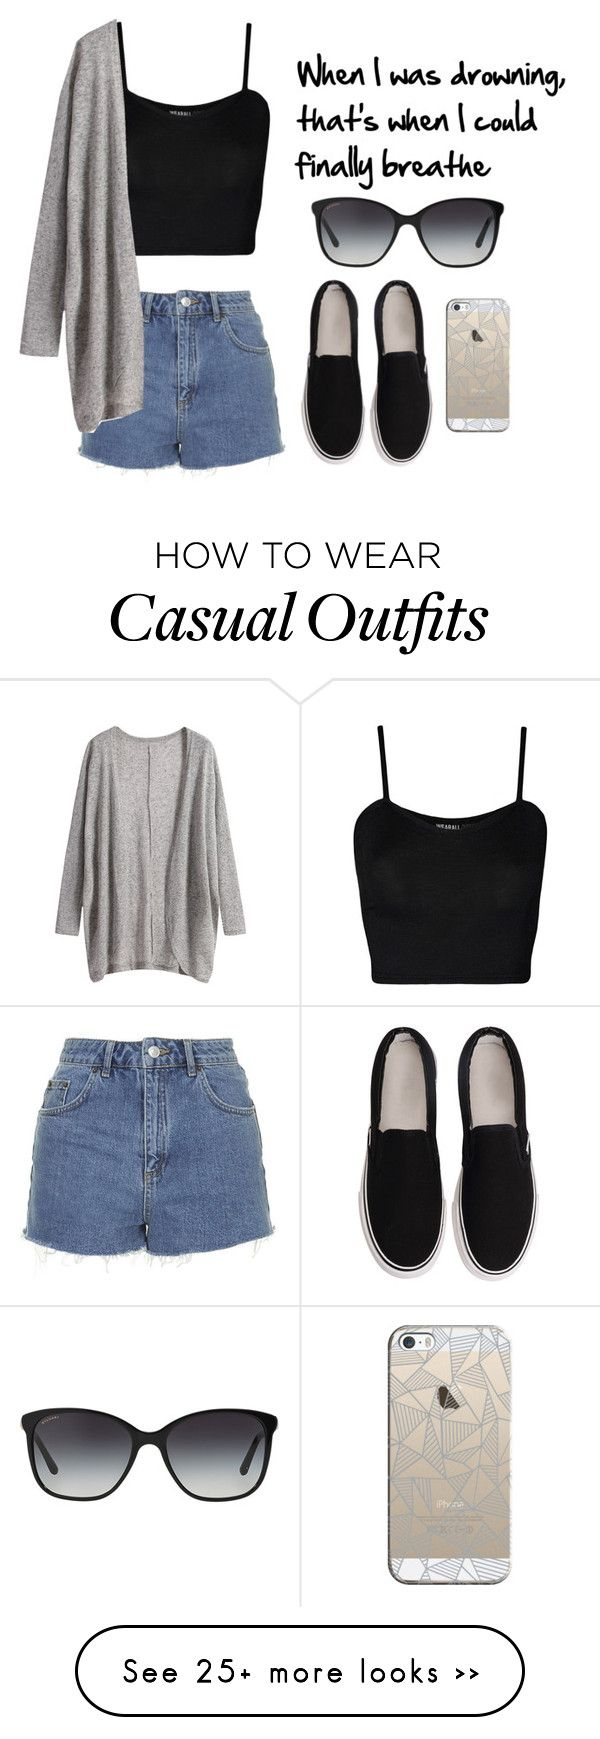 """Casual outfit"" by jordynnolivia on Polyvore featuring Topshop, WearAll, Casetify and Bulgari"